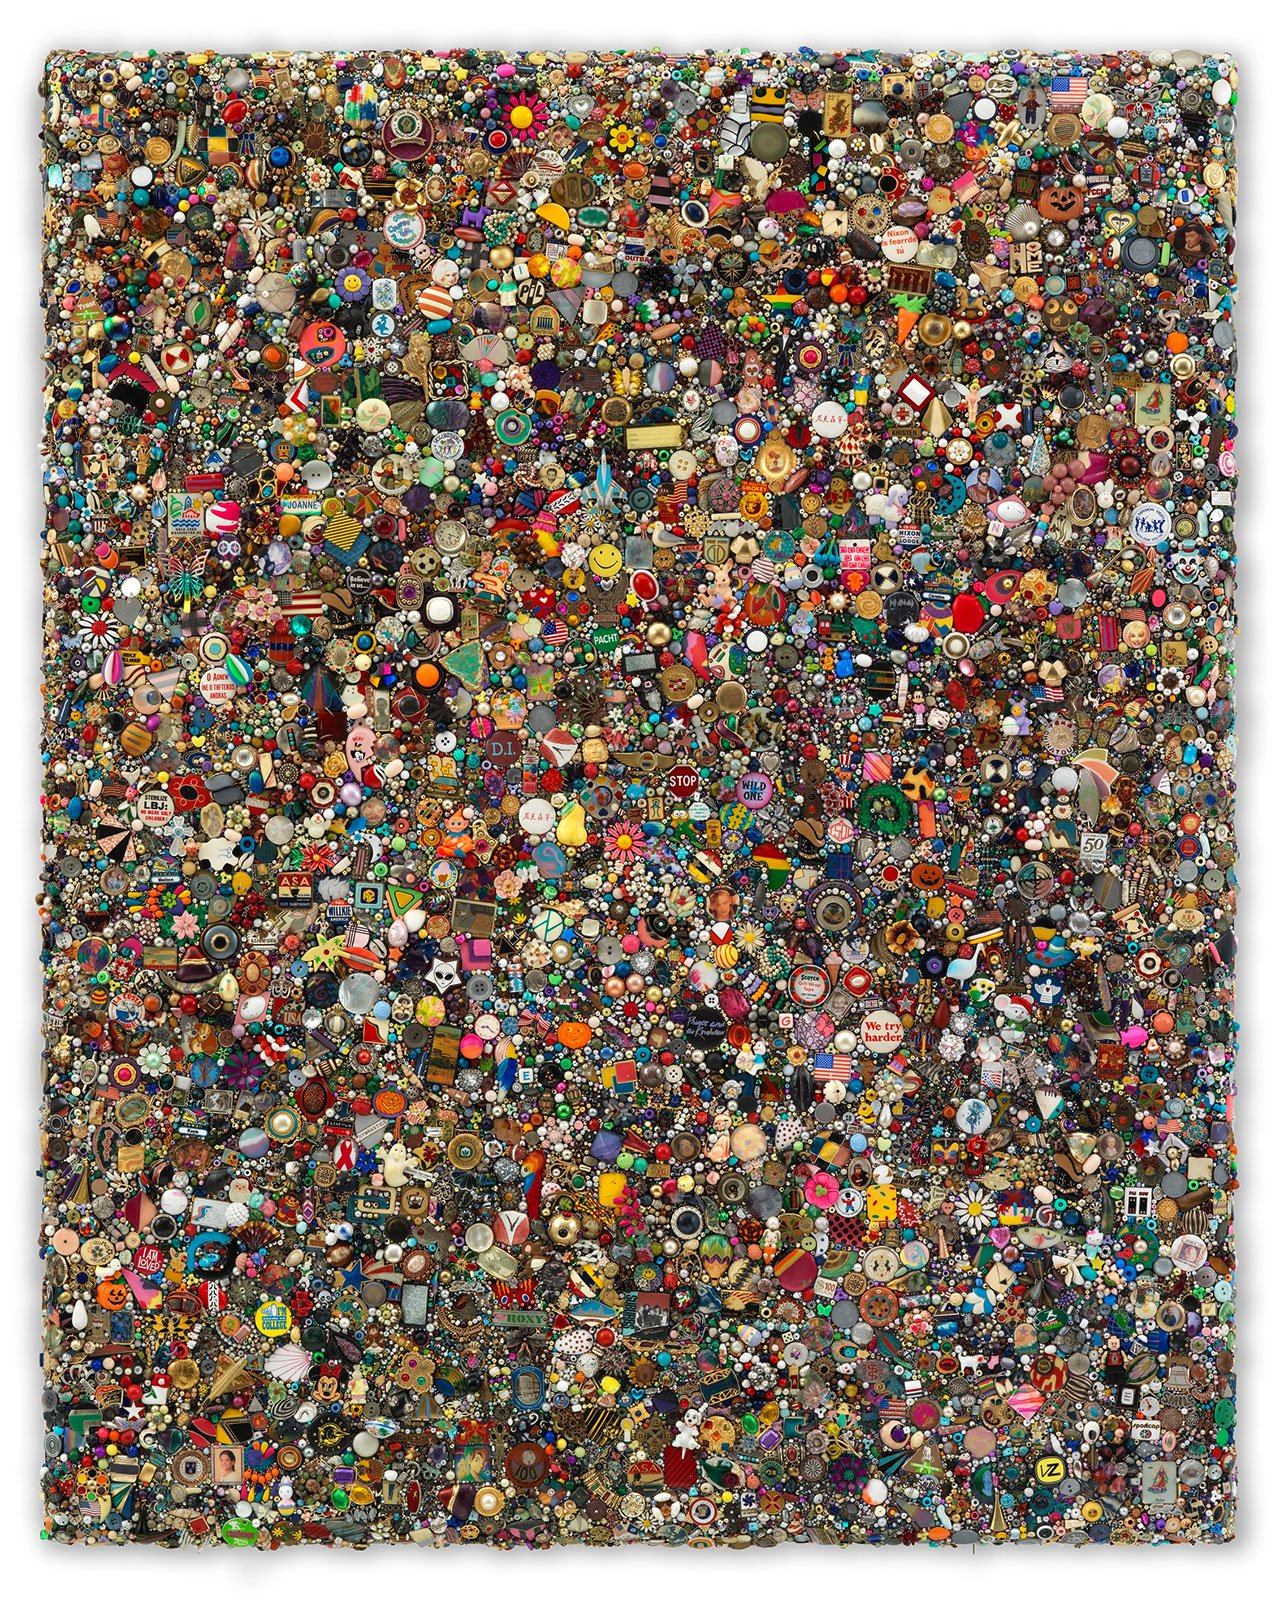 Mike Kelley, Memory Ware Flat #58, 2009. Mixed media on wood panel. 128.5 x 112.2 x 10.5 cm / 50 5/8 x 44 1/8 x 4 1/8 in. Art © Mike Kelley Foundation for the Arts. All Rights Reserved / Licensed by VAGA, New York, NY. Private Collection. Courtesy the Foundation and Hauser & Wirth. Photo by Stefan Altenburger Photography Zürich.